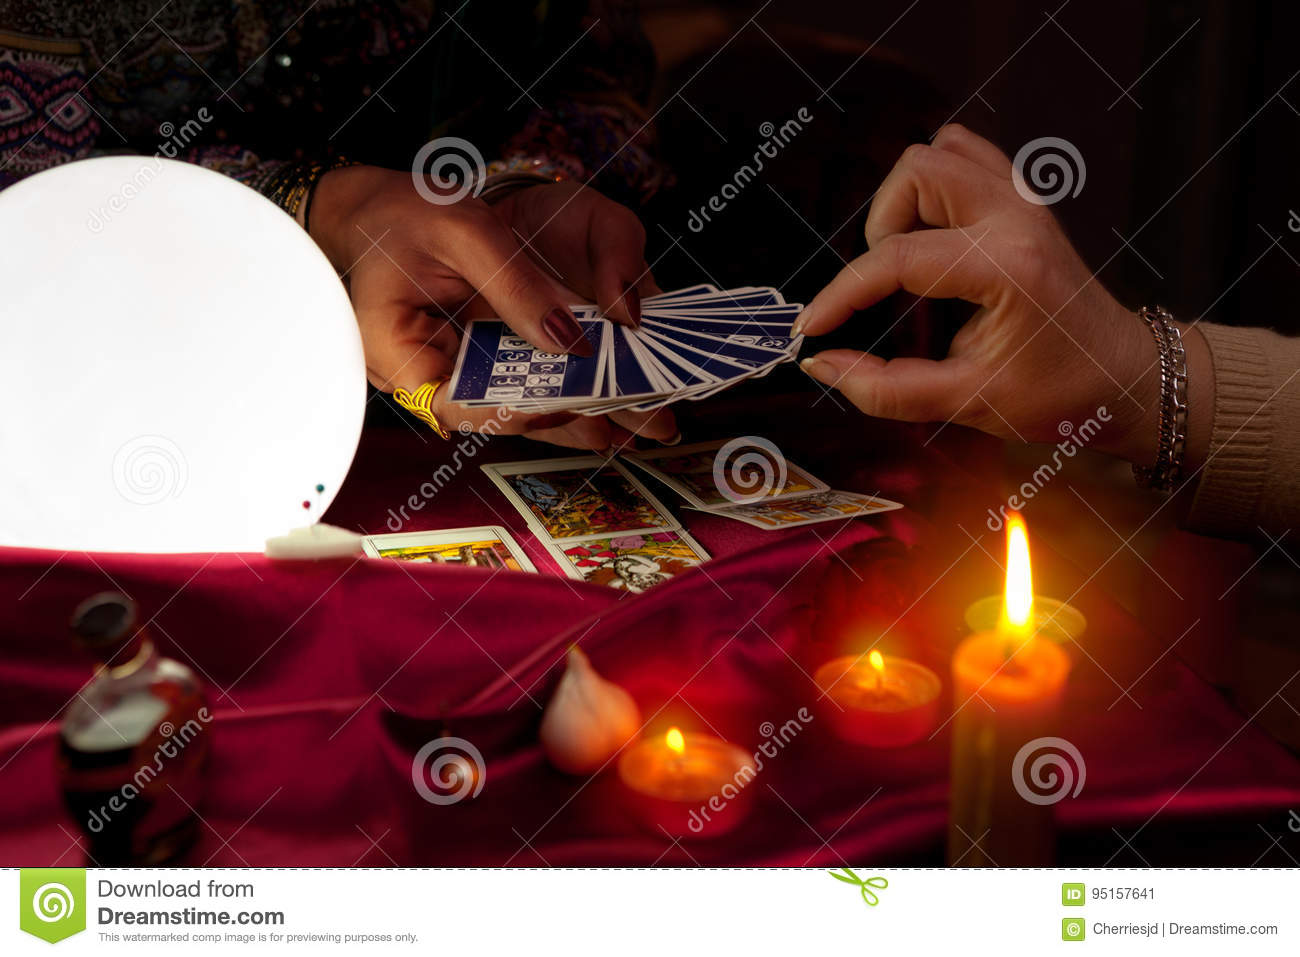 Woman fortune teller holding tarot cards in her hands